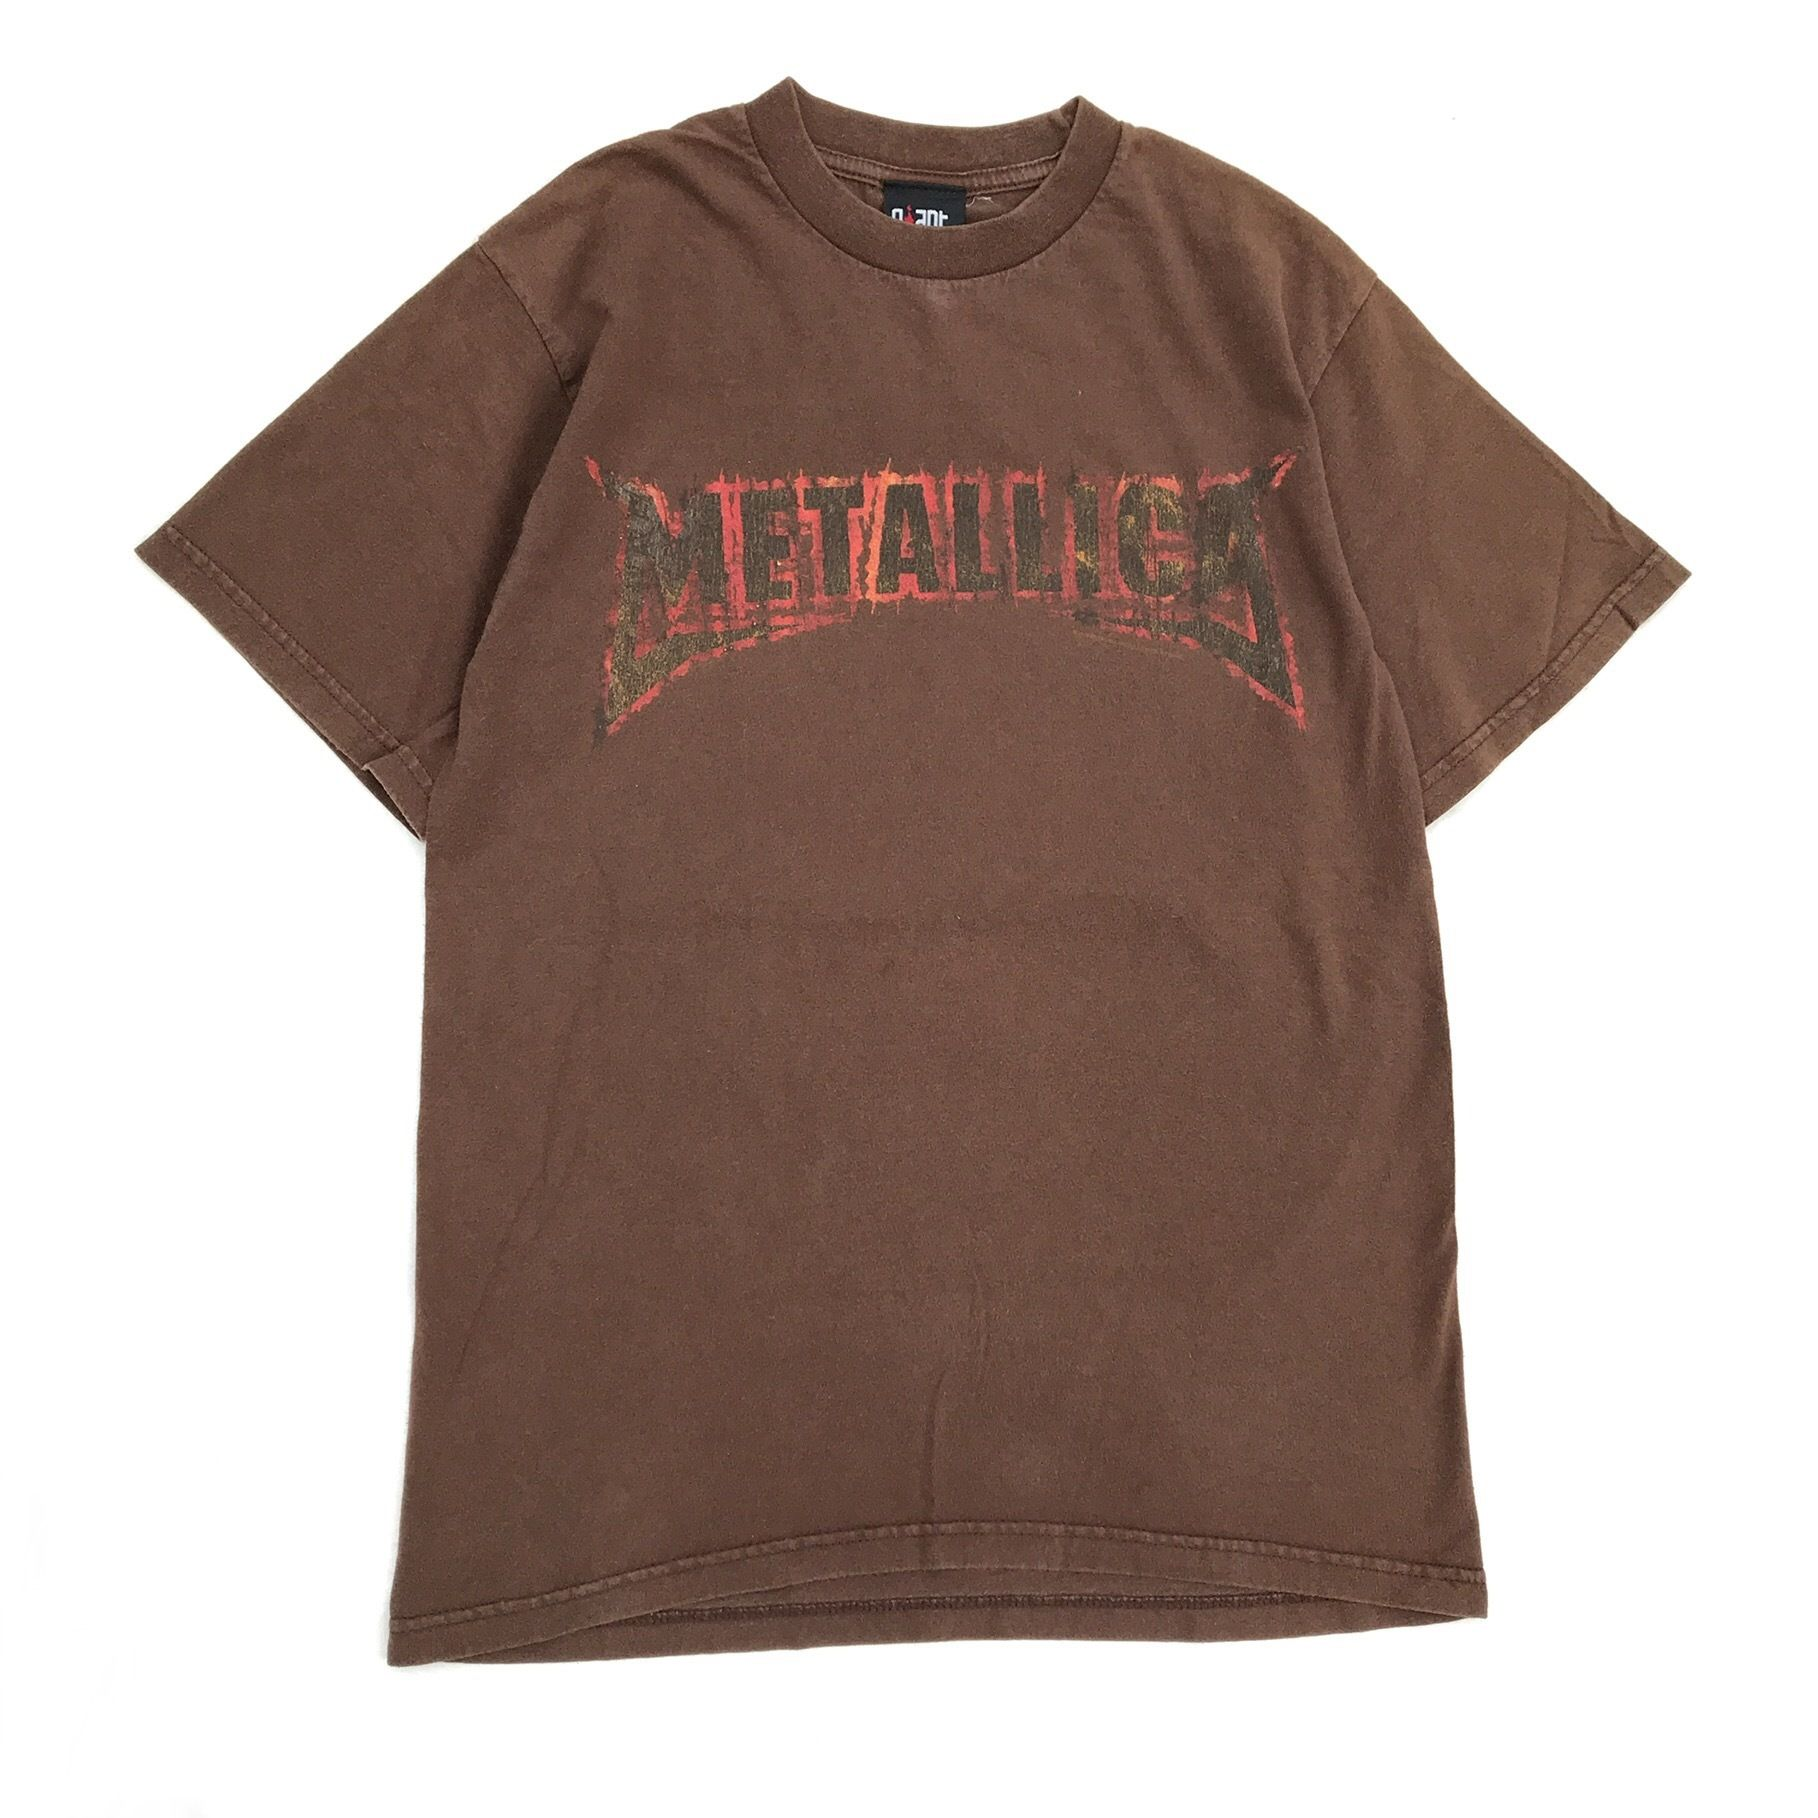 Vintage METALICA Tee / Brown